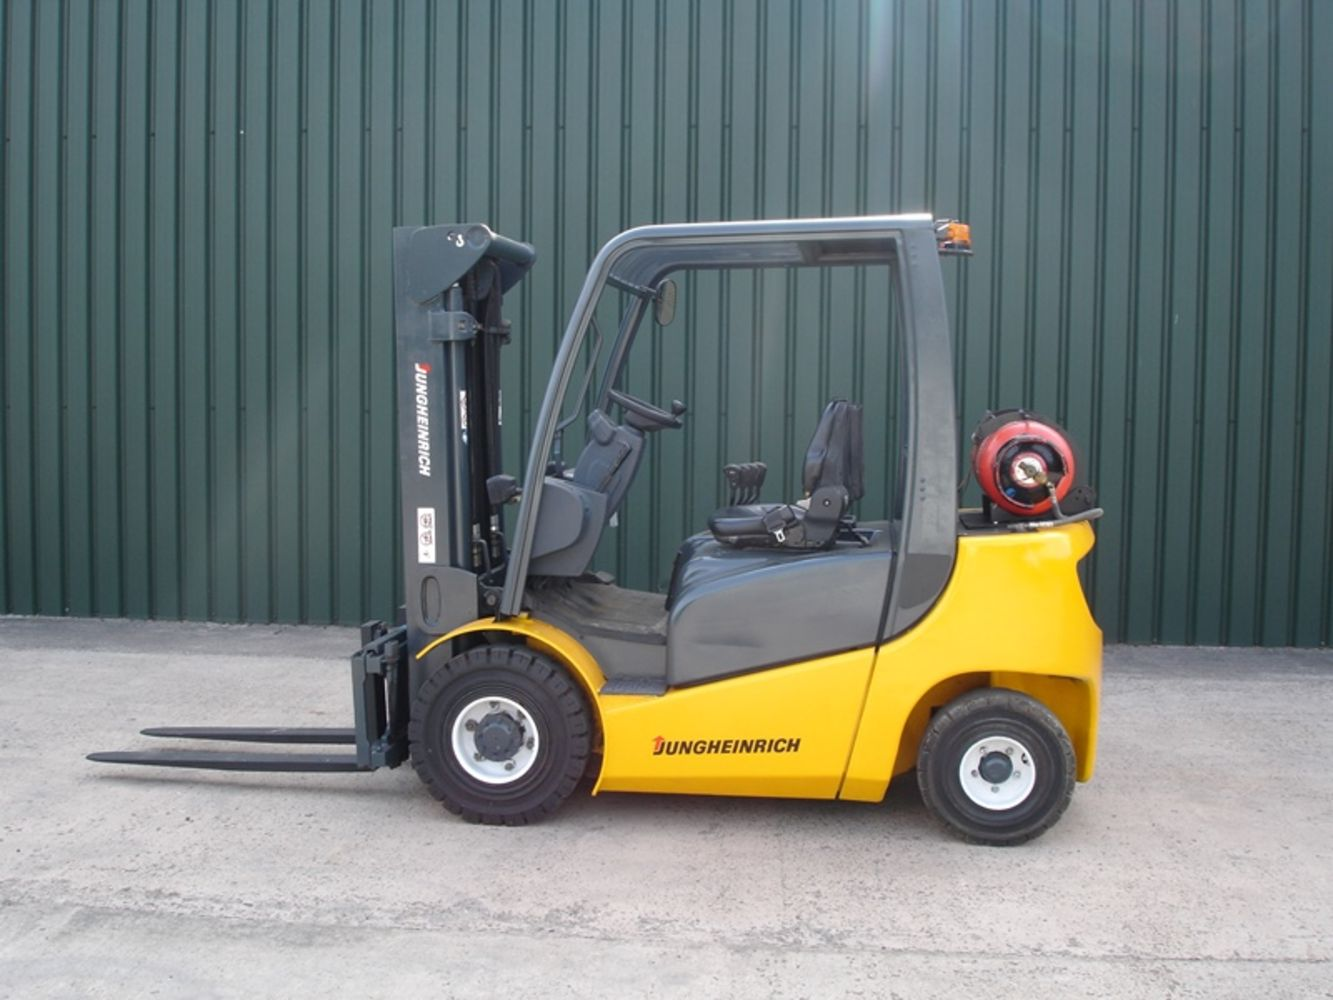 Material Handling Equipment due to Warehouse closure.  Includes Forklifts, Granulator, Balers, Compressors, Sweepers, Pallet Wrappers and more